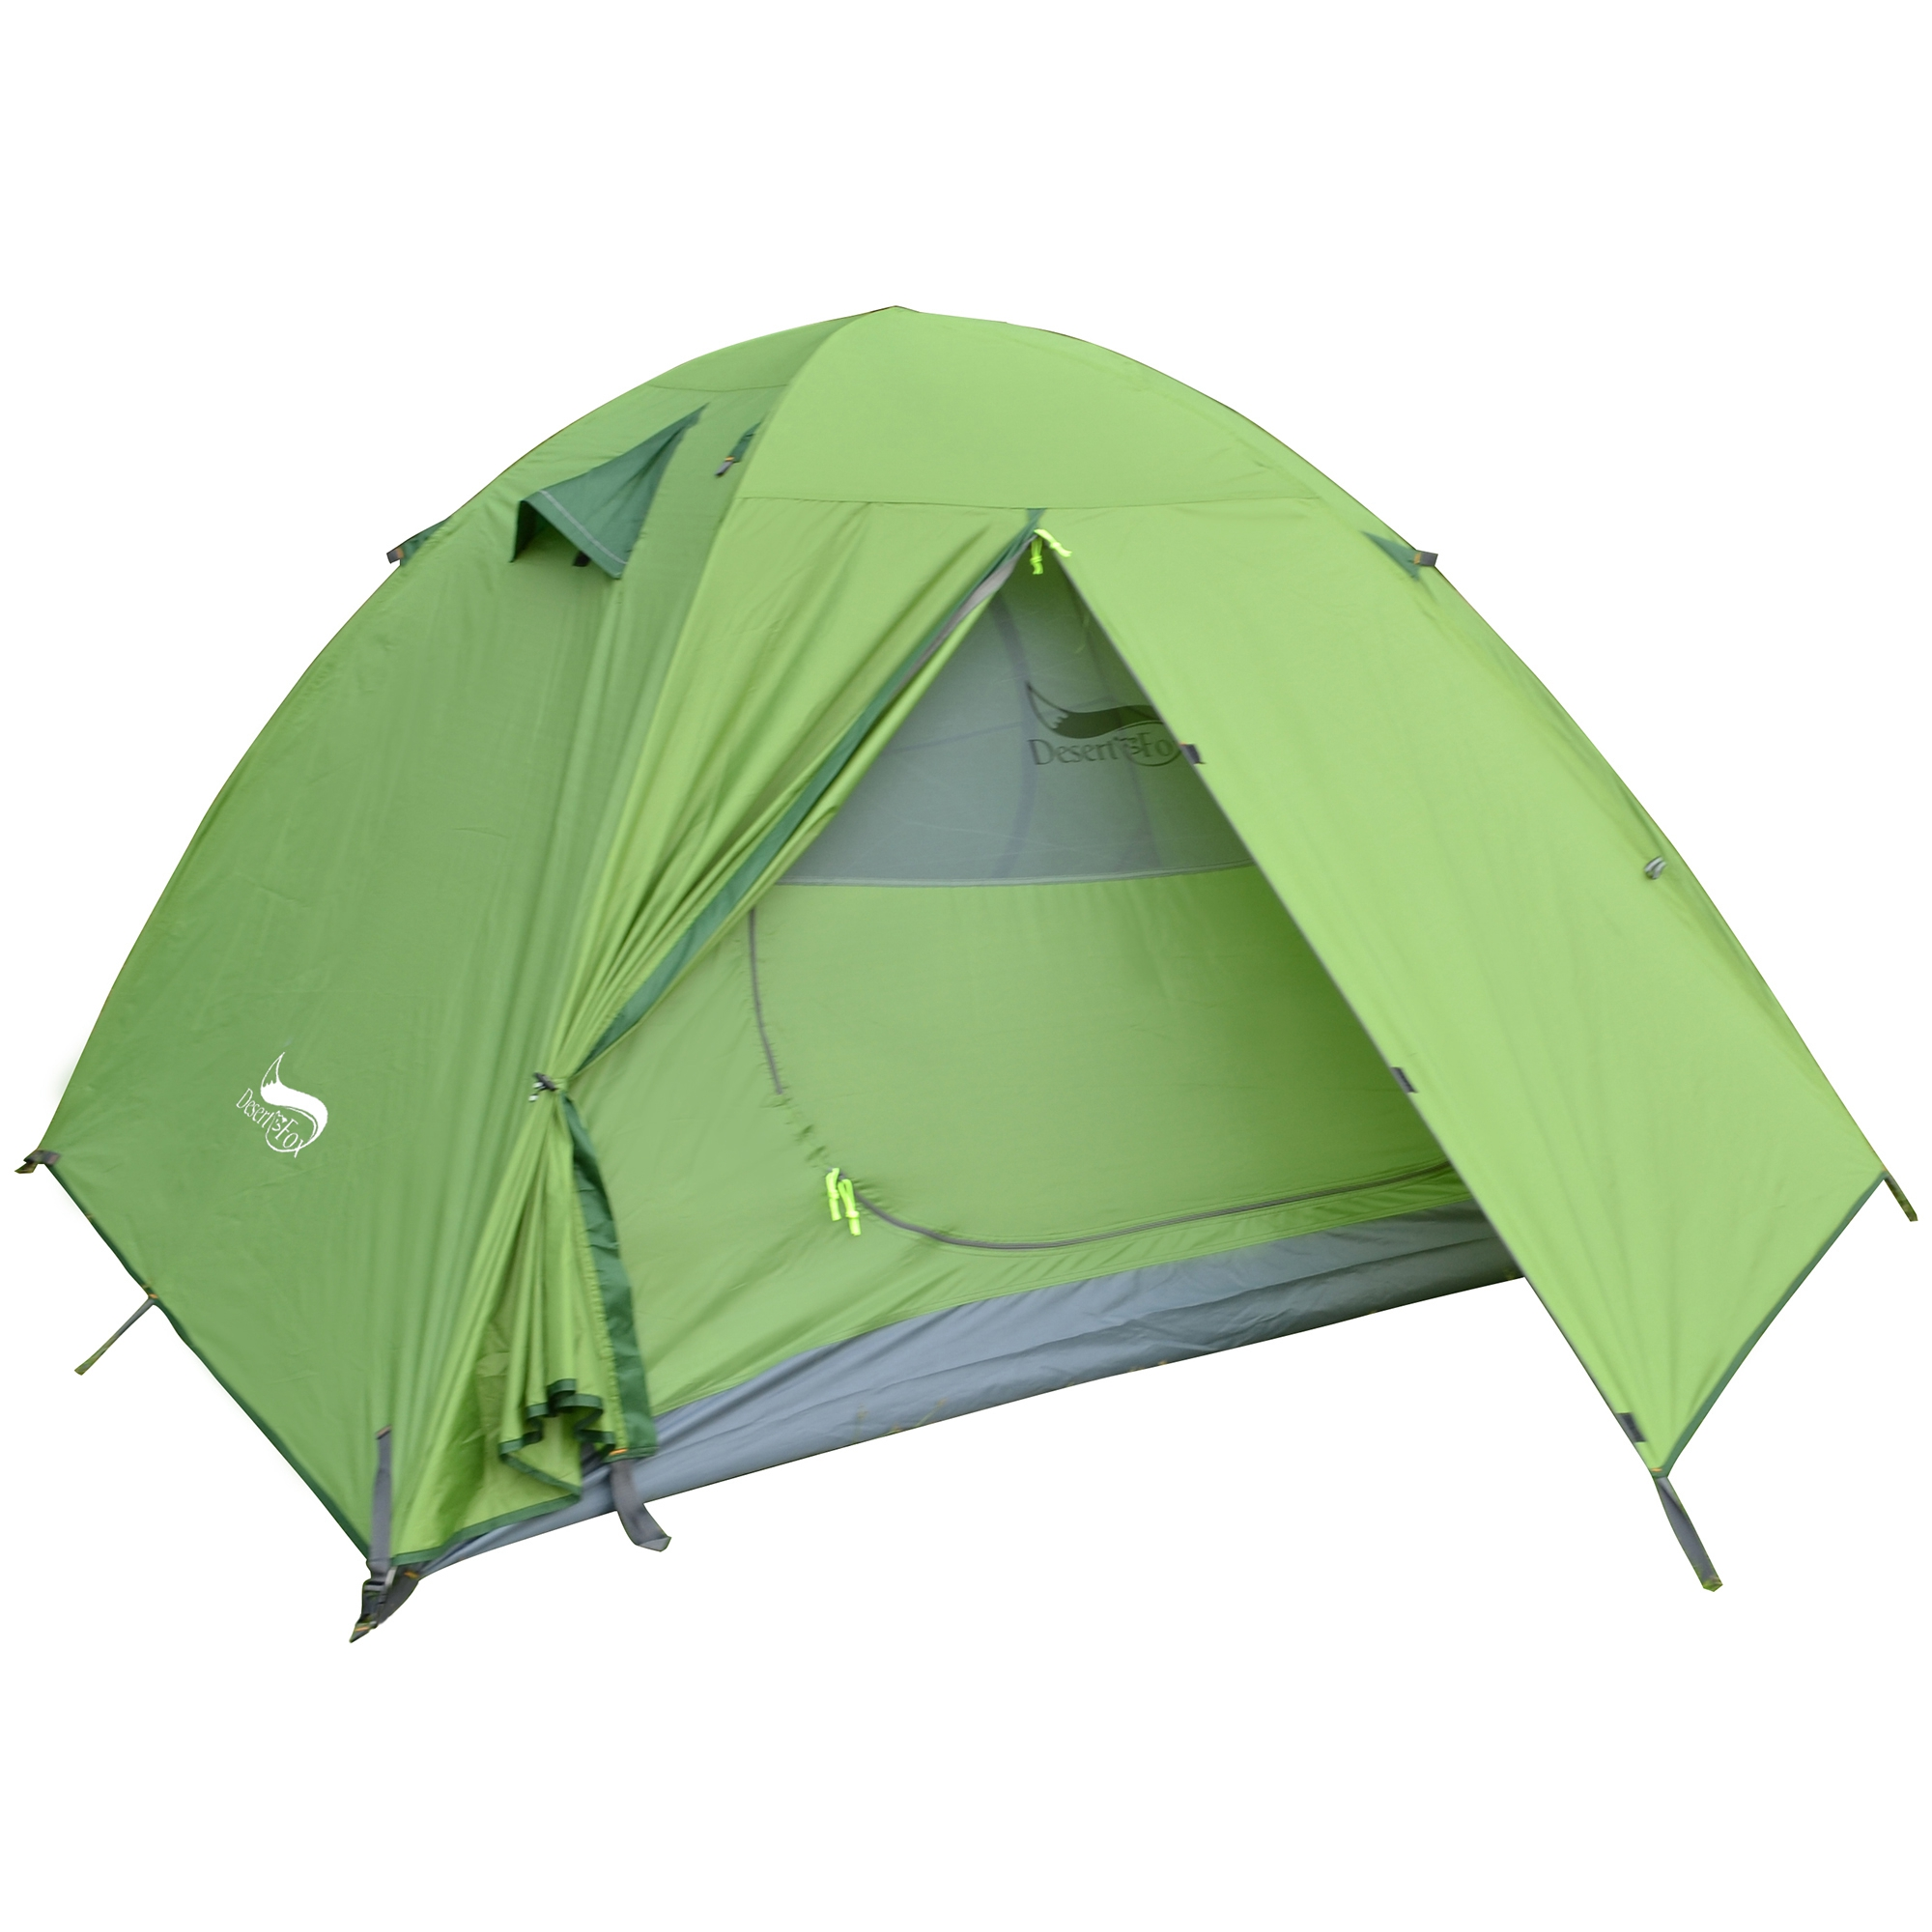 3 person tent green